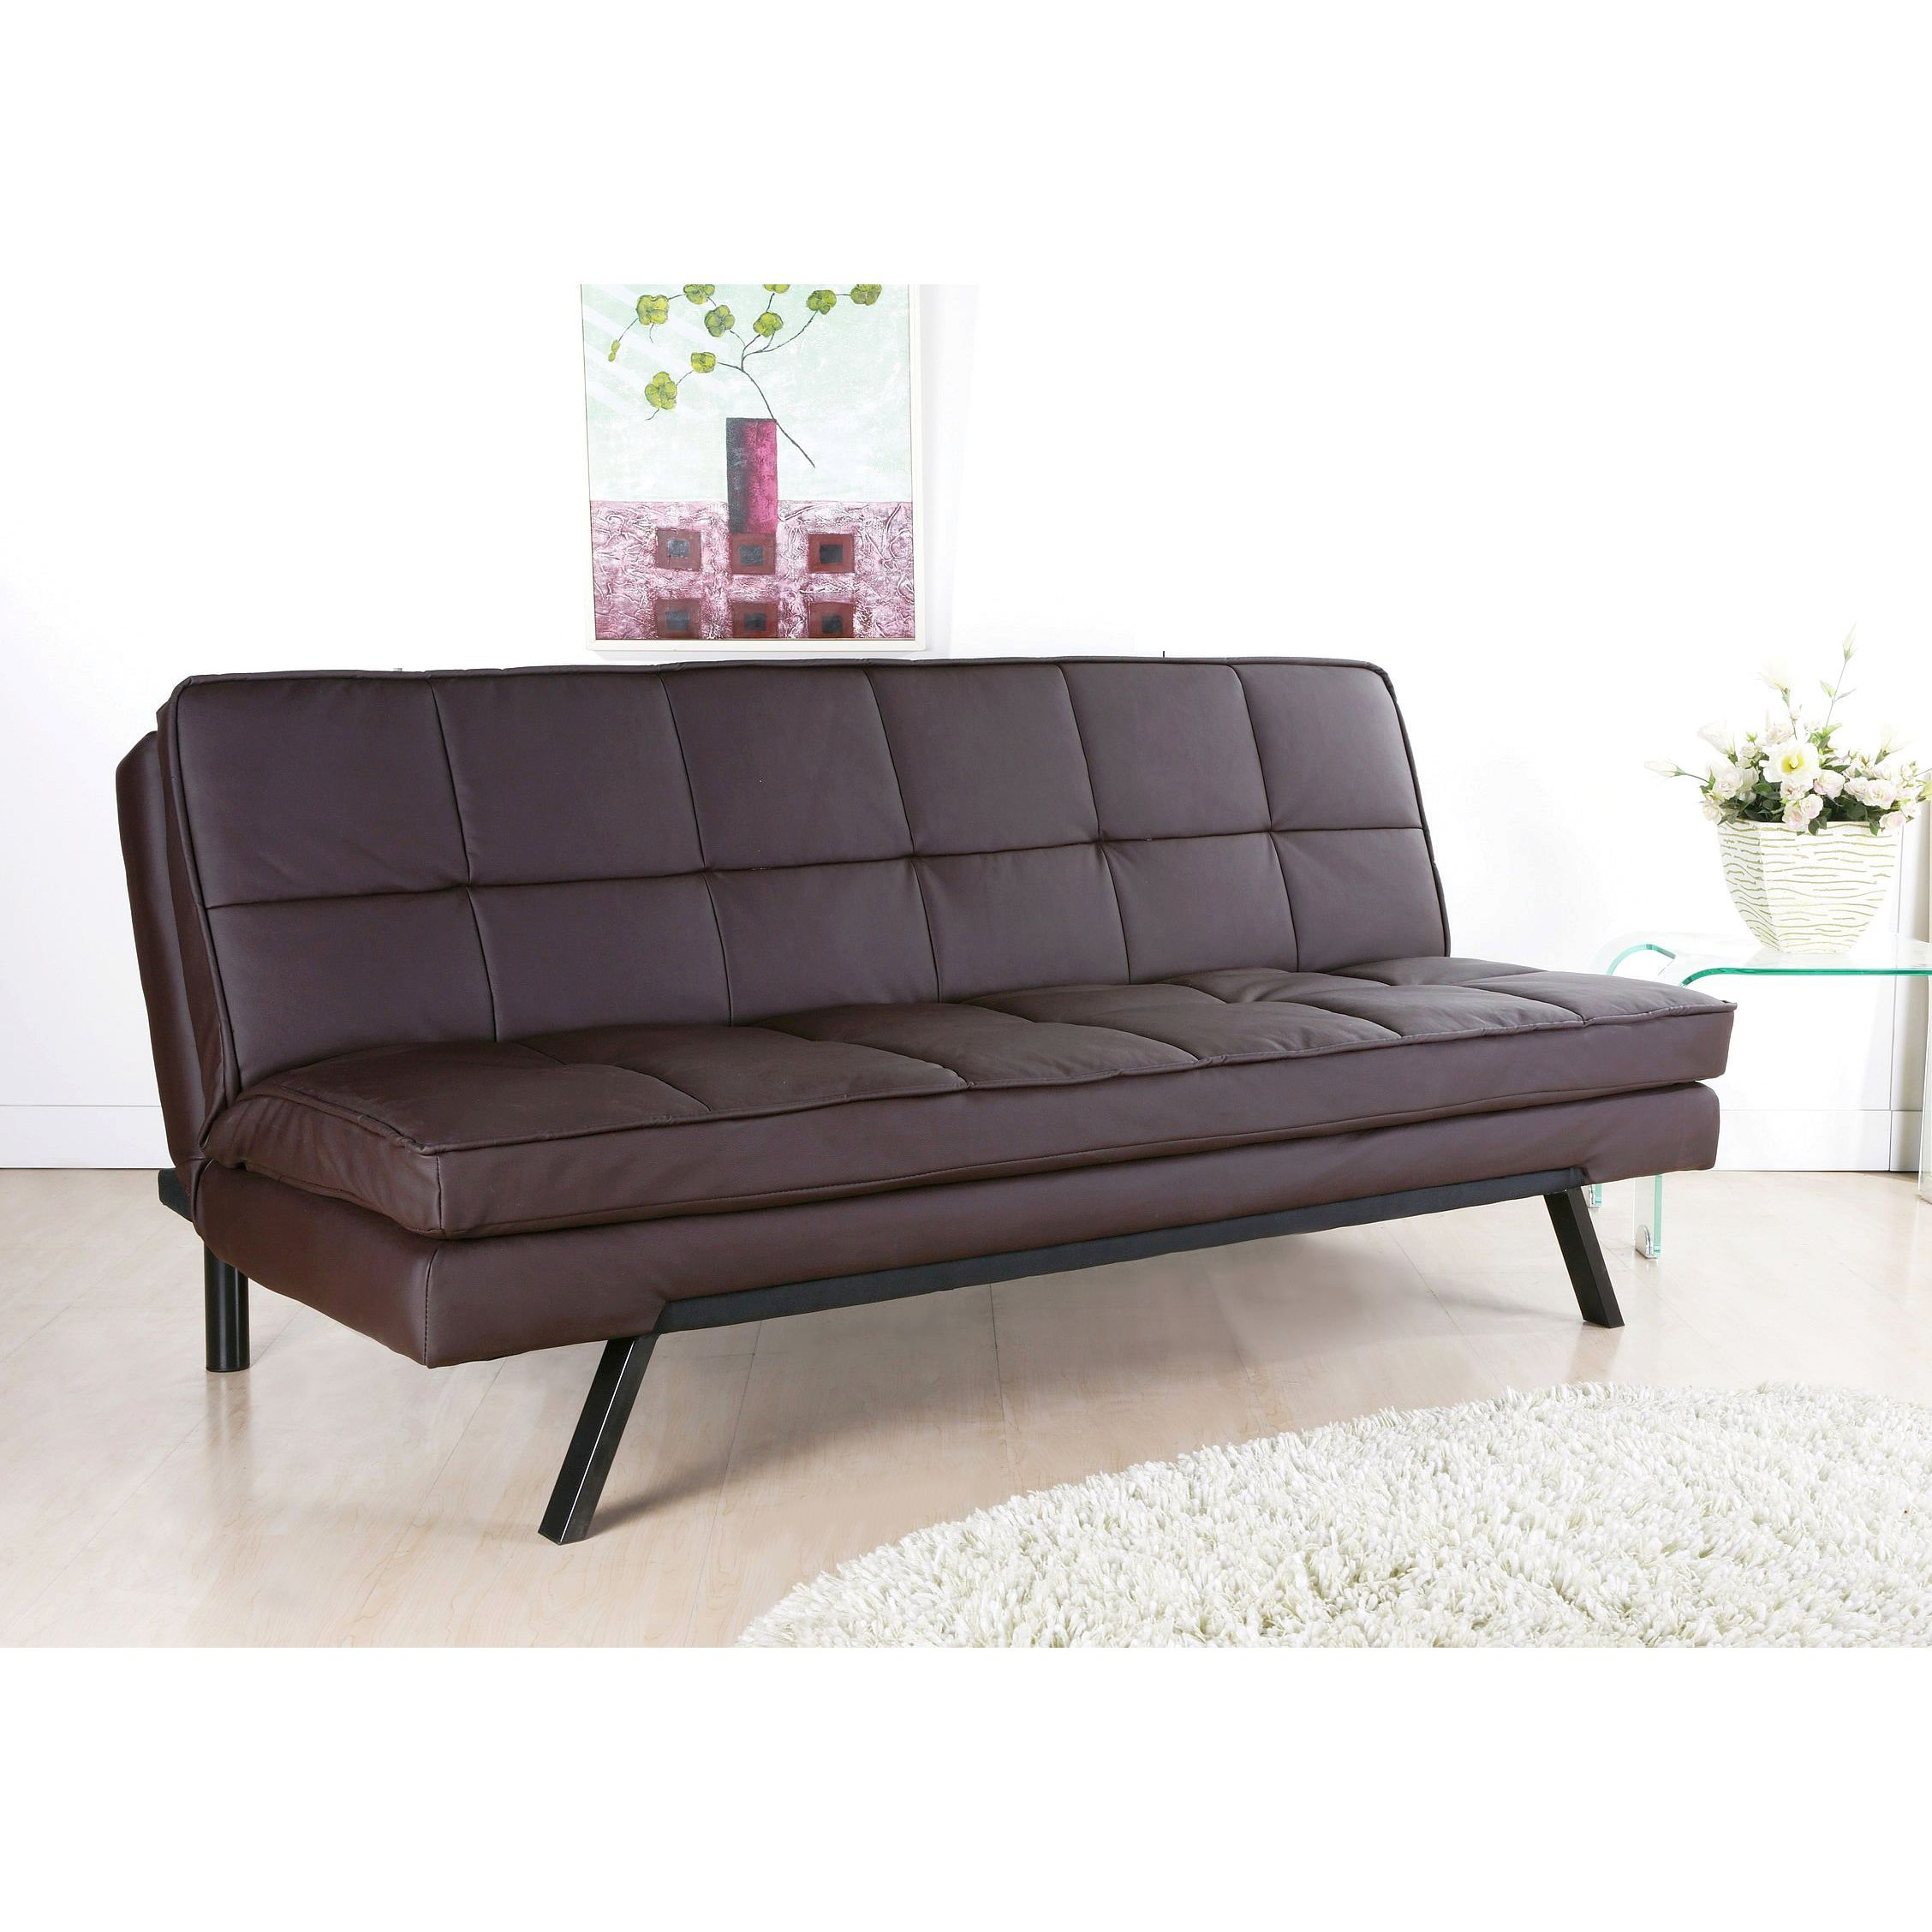 Abbyson Newport Faux Leather Futon Sleeper Sofa Dark Brown Size Twin